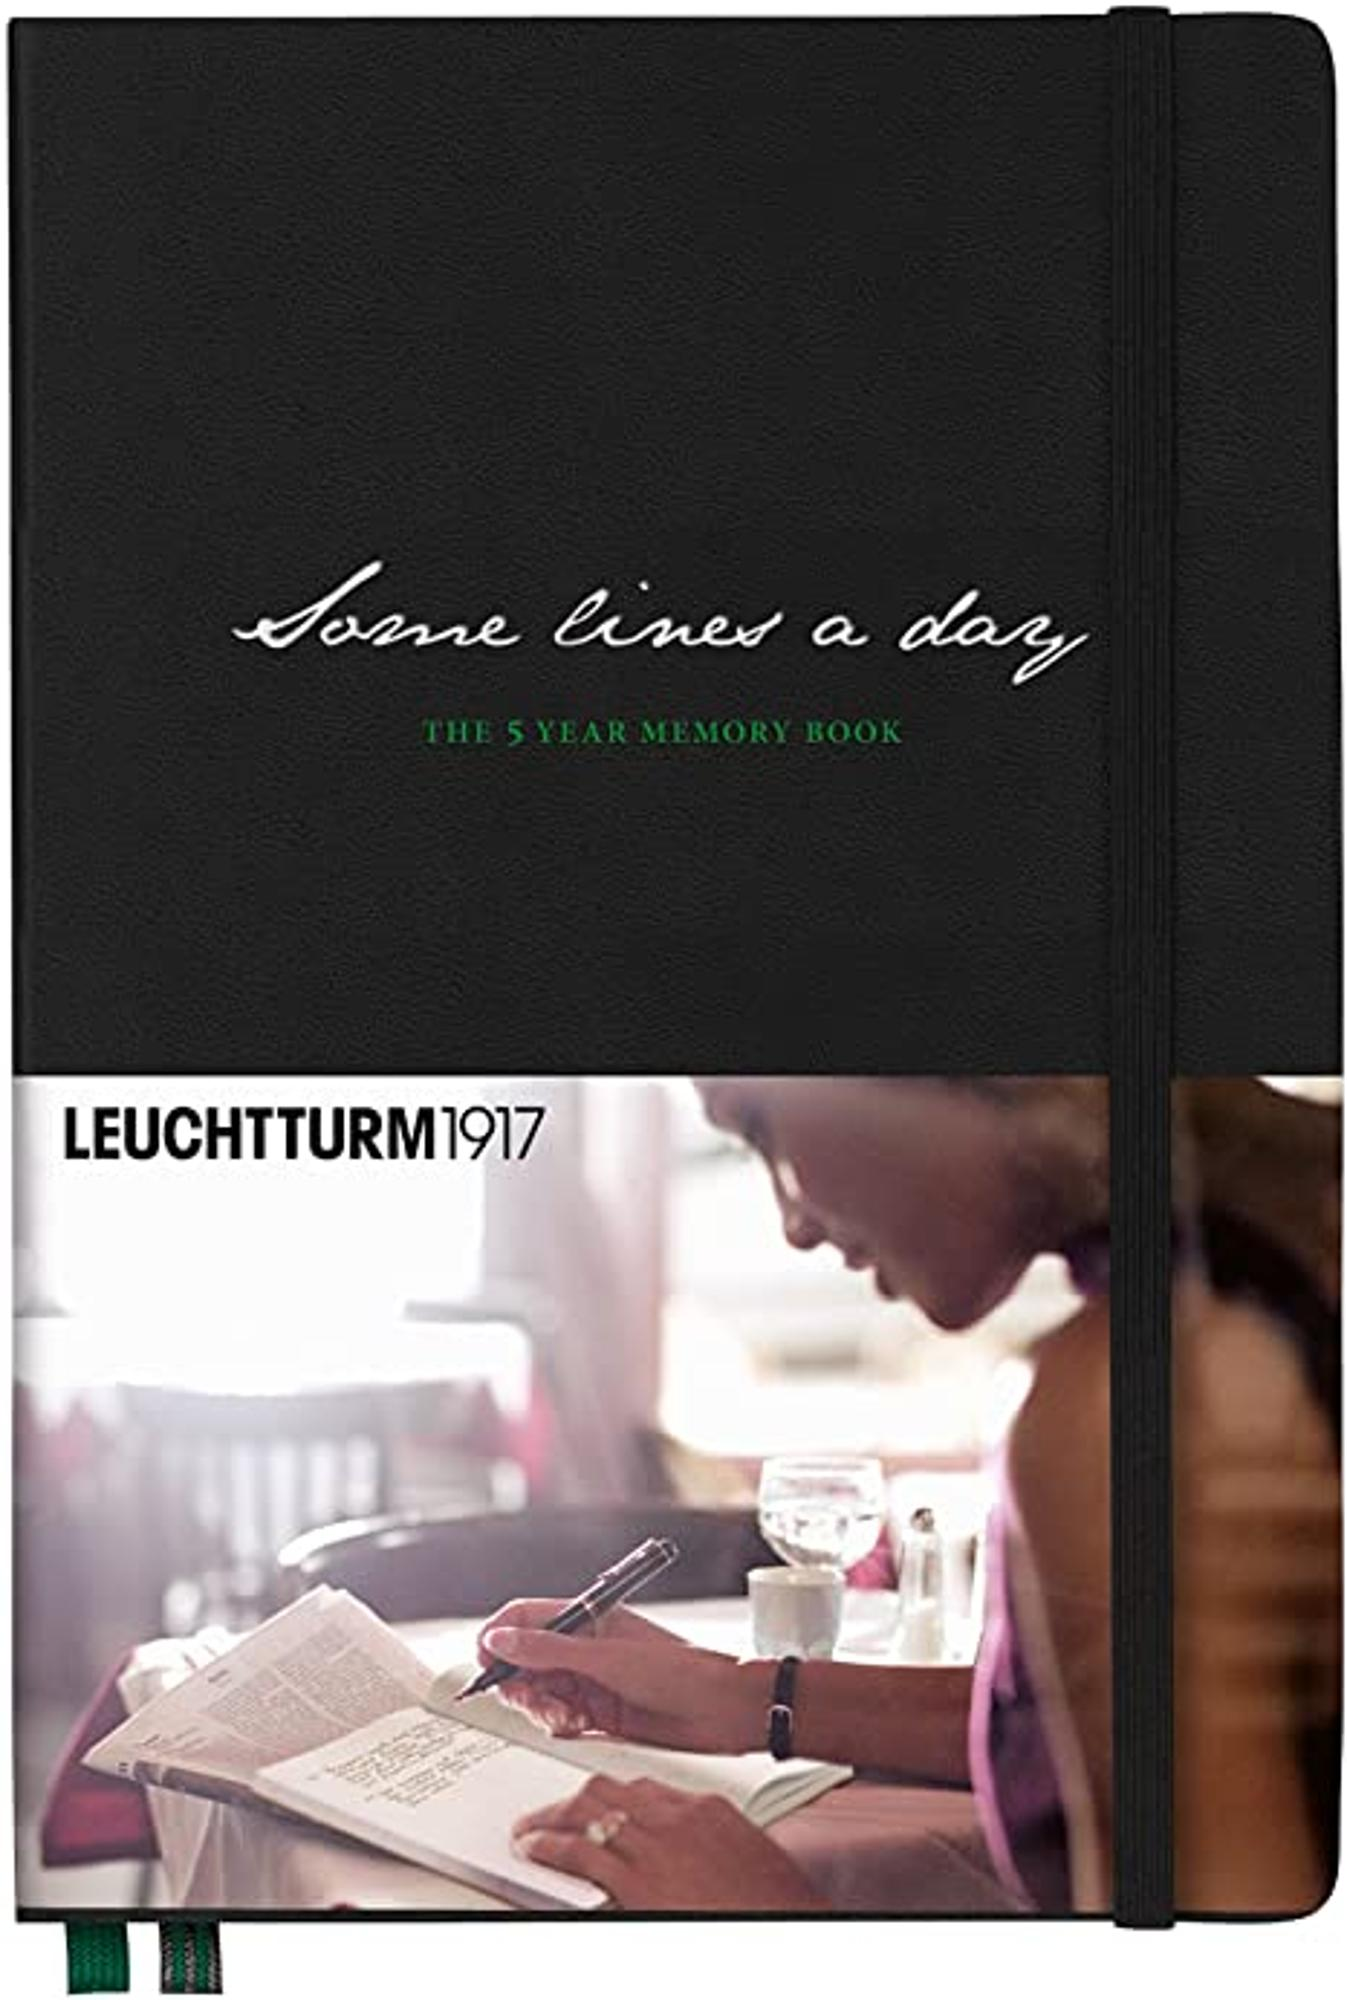 """image of: Leuchtturm1917 """"The 5 Year Memory Book"""""""